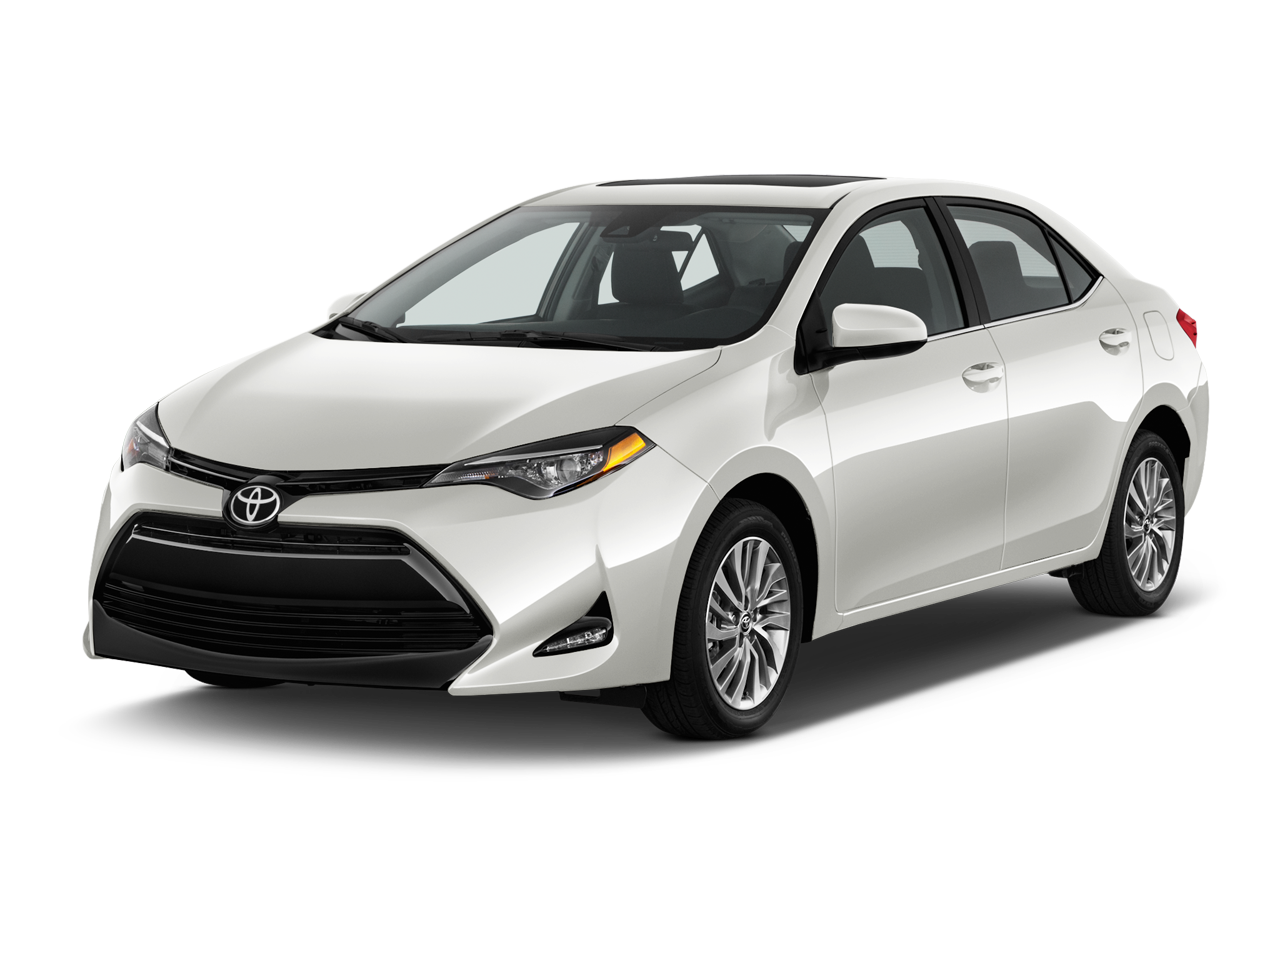 new 2017 toyota corolla xle near olathe ks olathe toyota. Black Bedroom Furniture Sets. Home Design Ideas